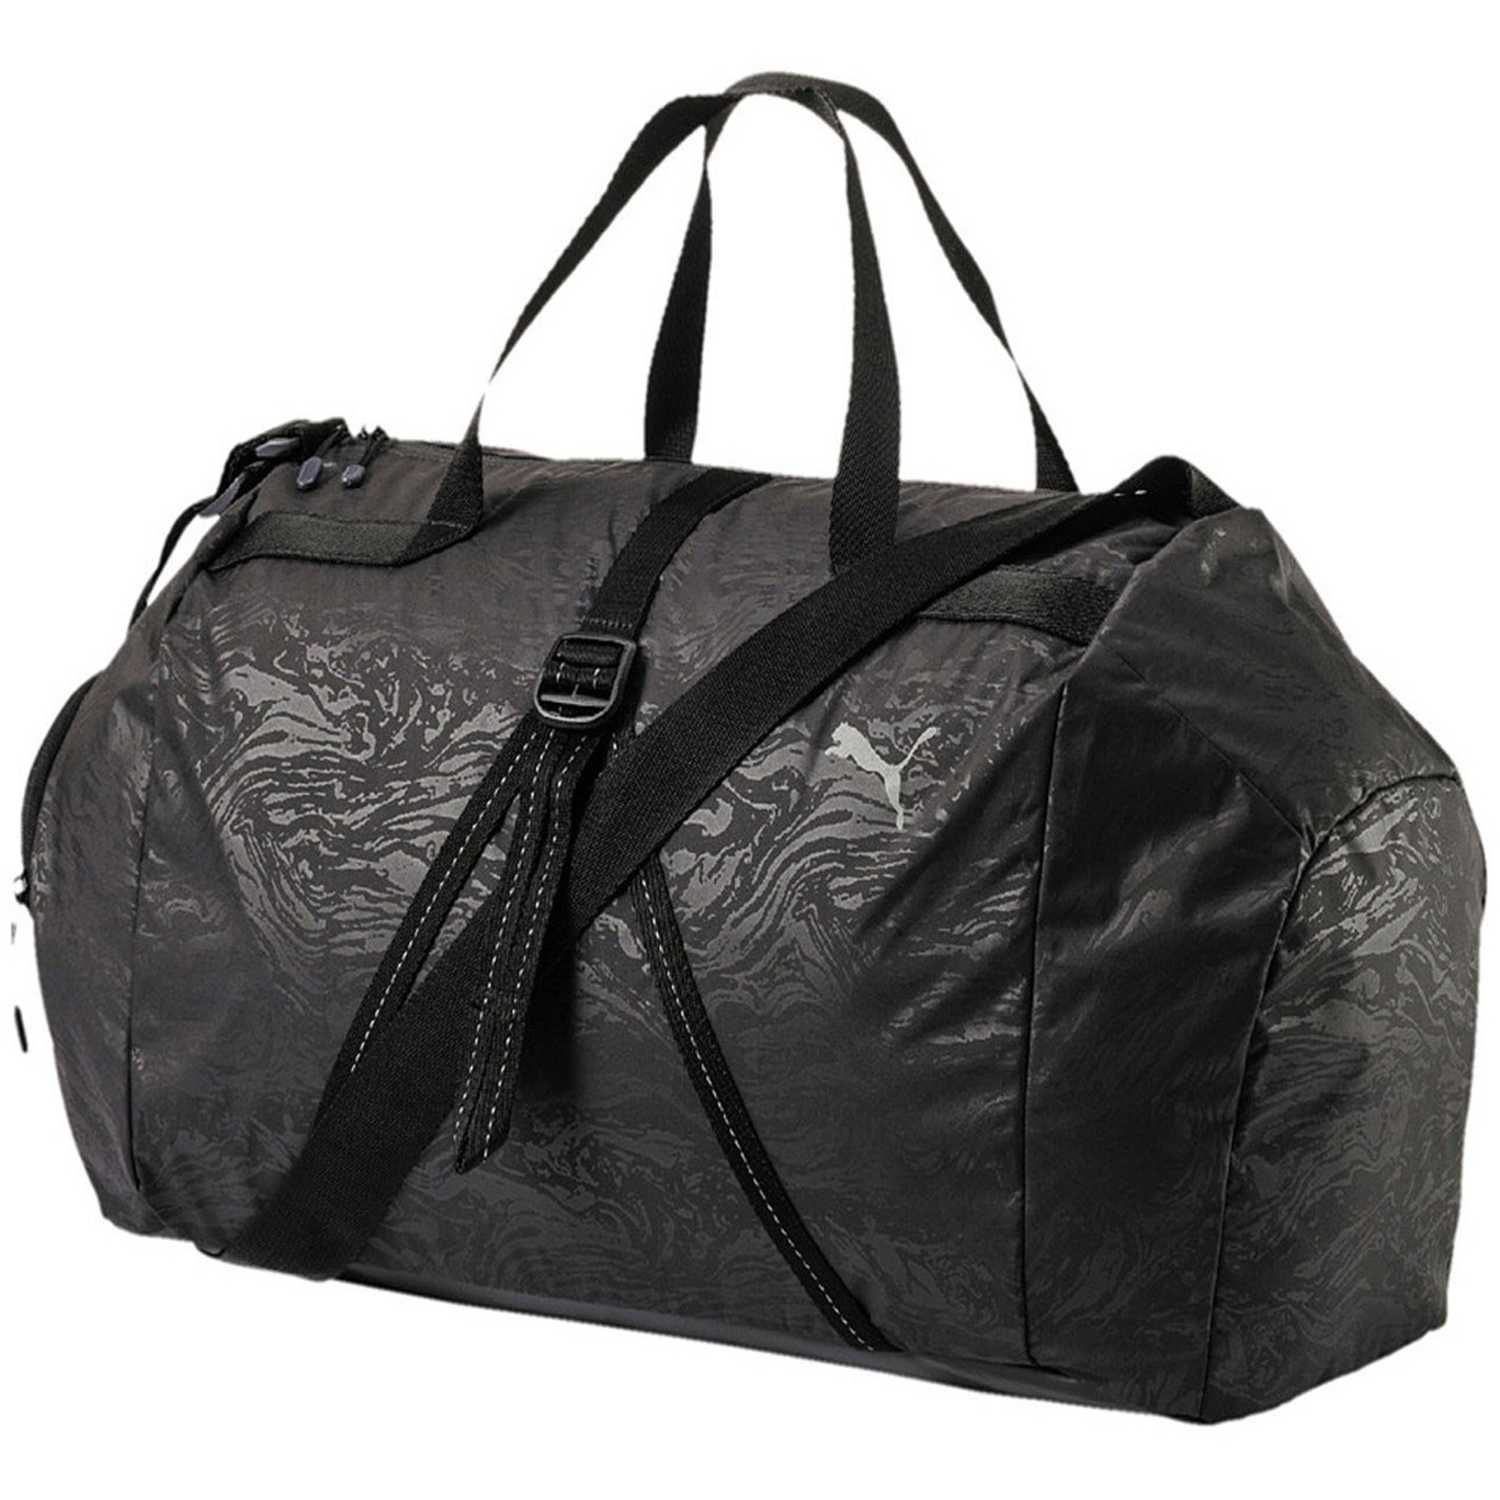 Puma Fit At Sports Duffle Negro Bolsas para equipo